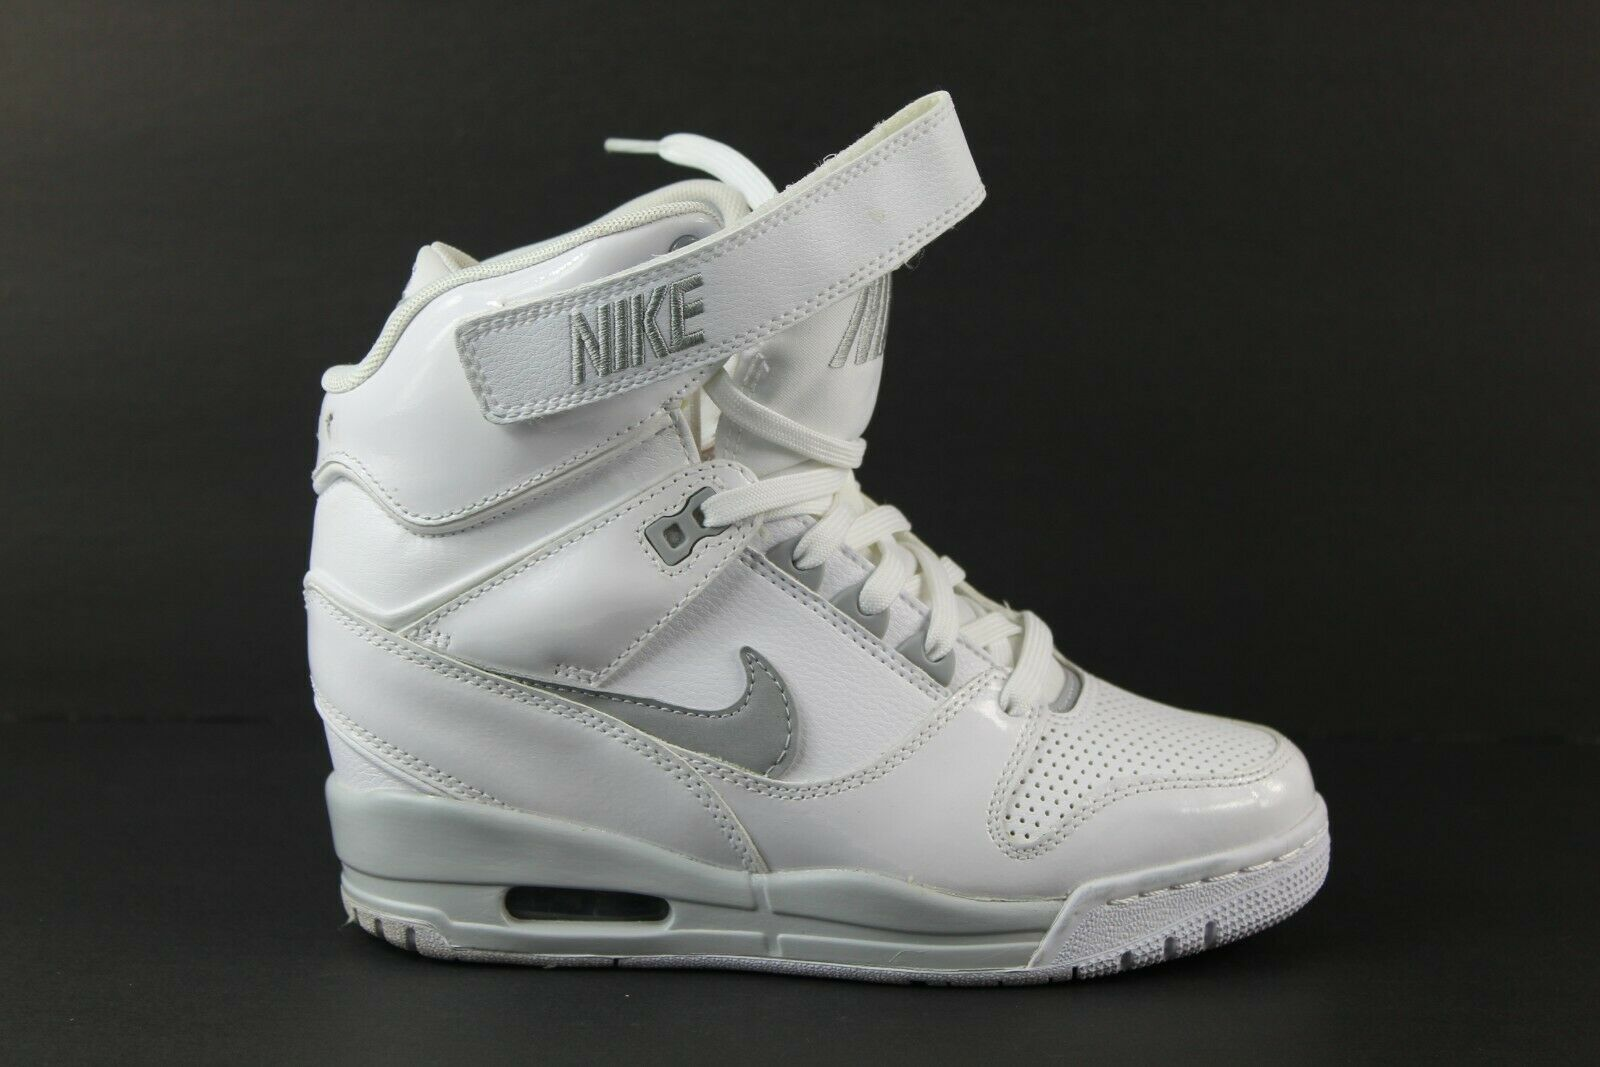 WMNS Nike Air Revolution Sky Hi Wedge Sz 6.5 White Gray Sneakers Rare 599410 102